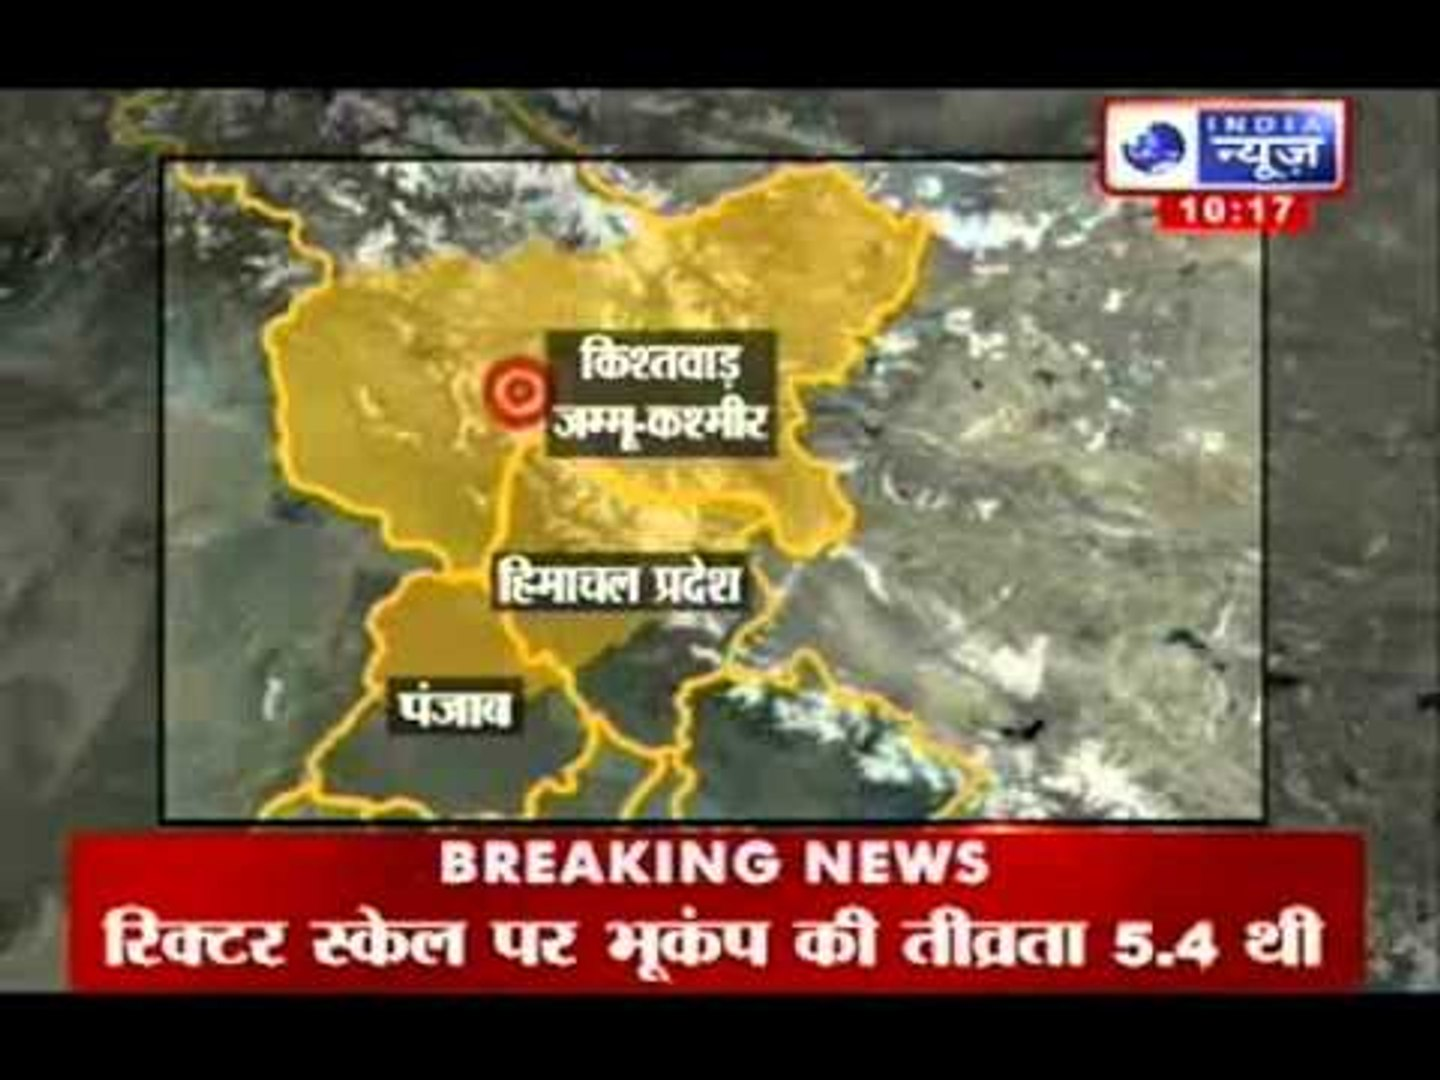 India News: Moderate intensity quake hits parts of northern India